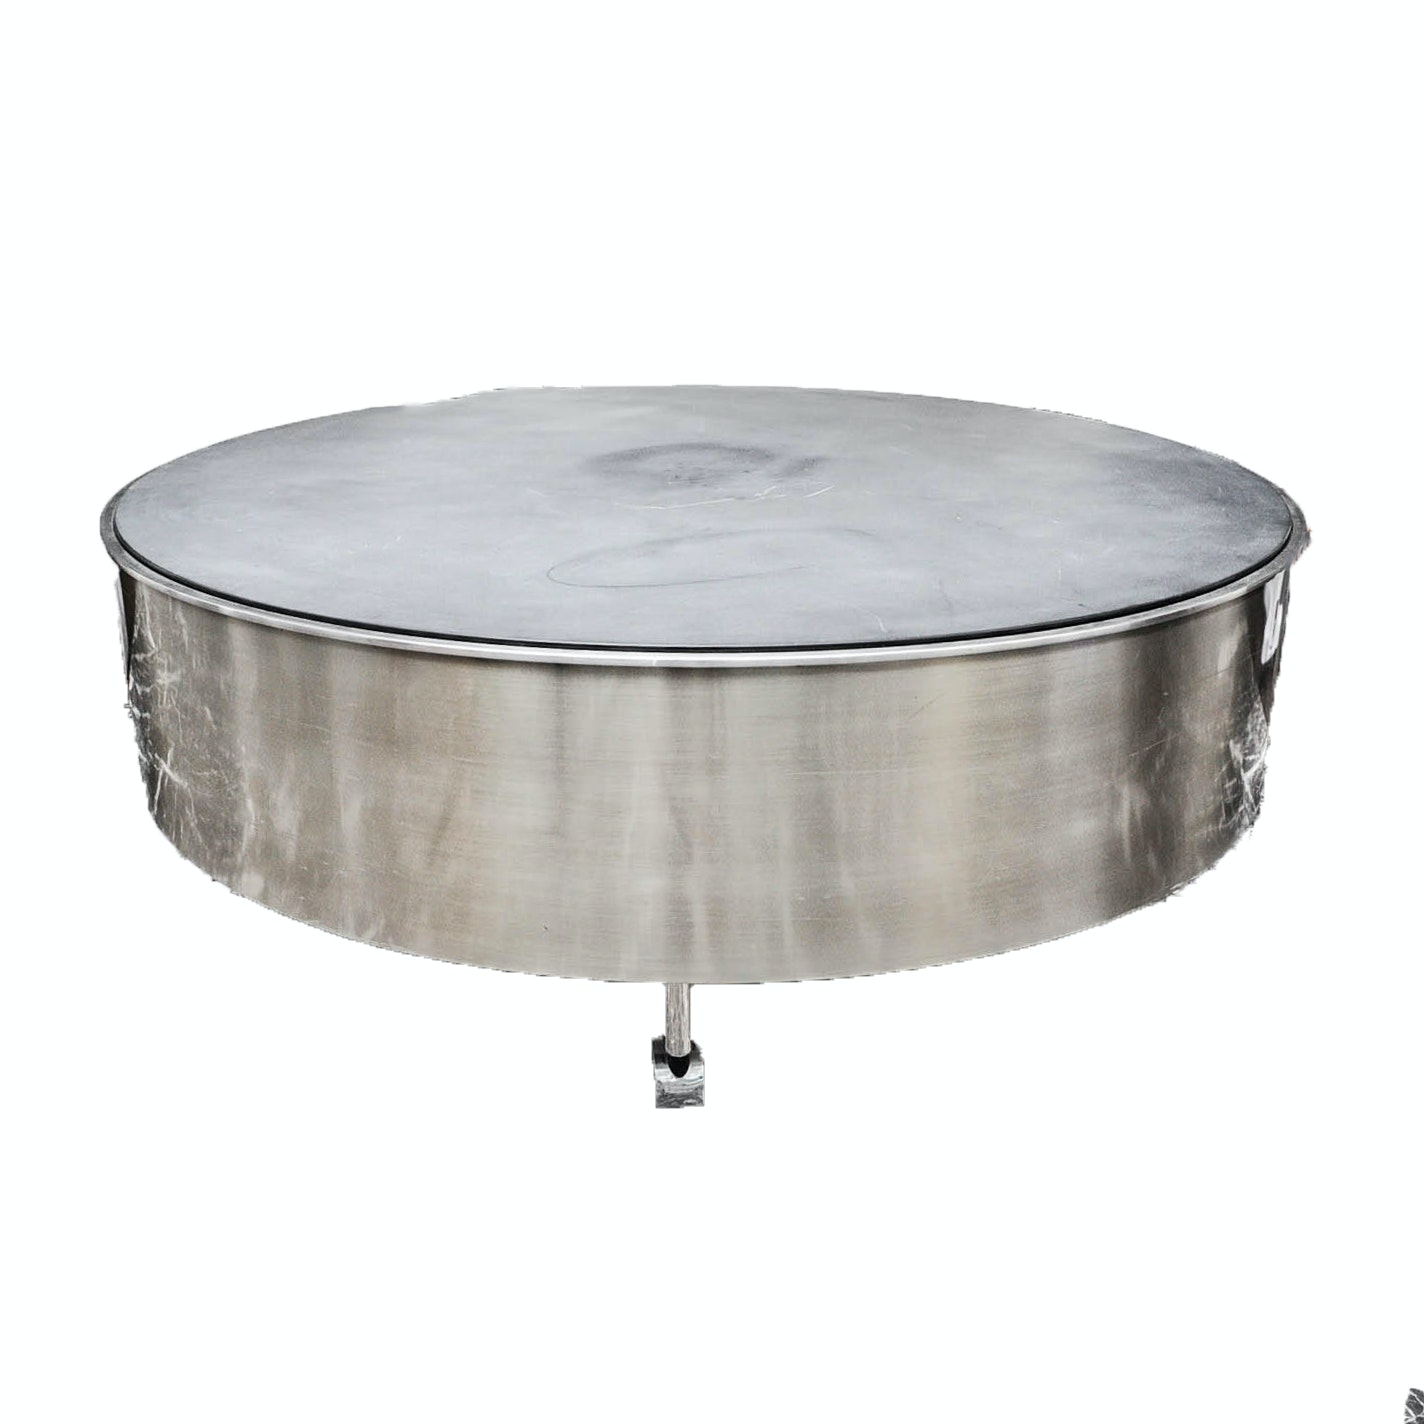 Circular Metal Table on Casters